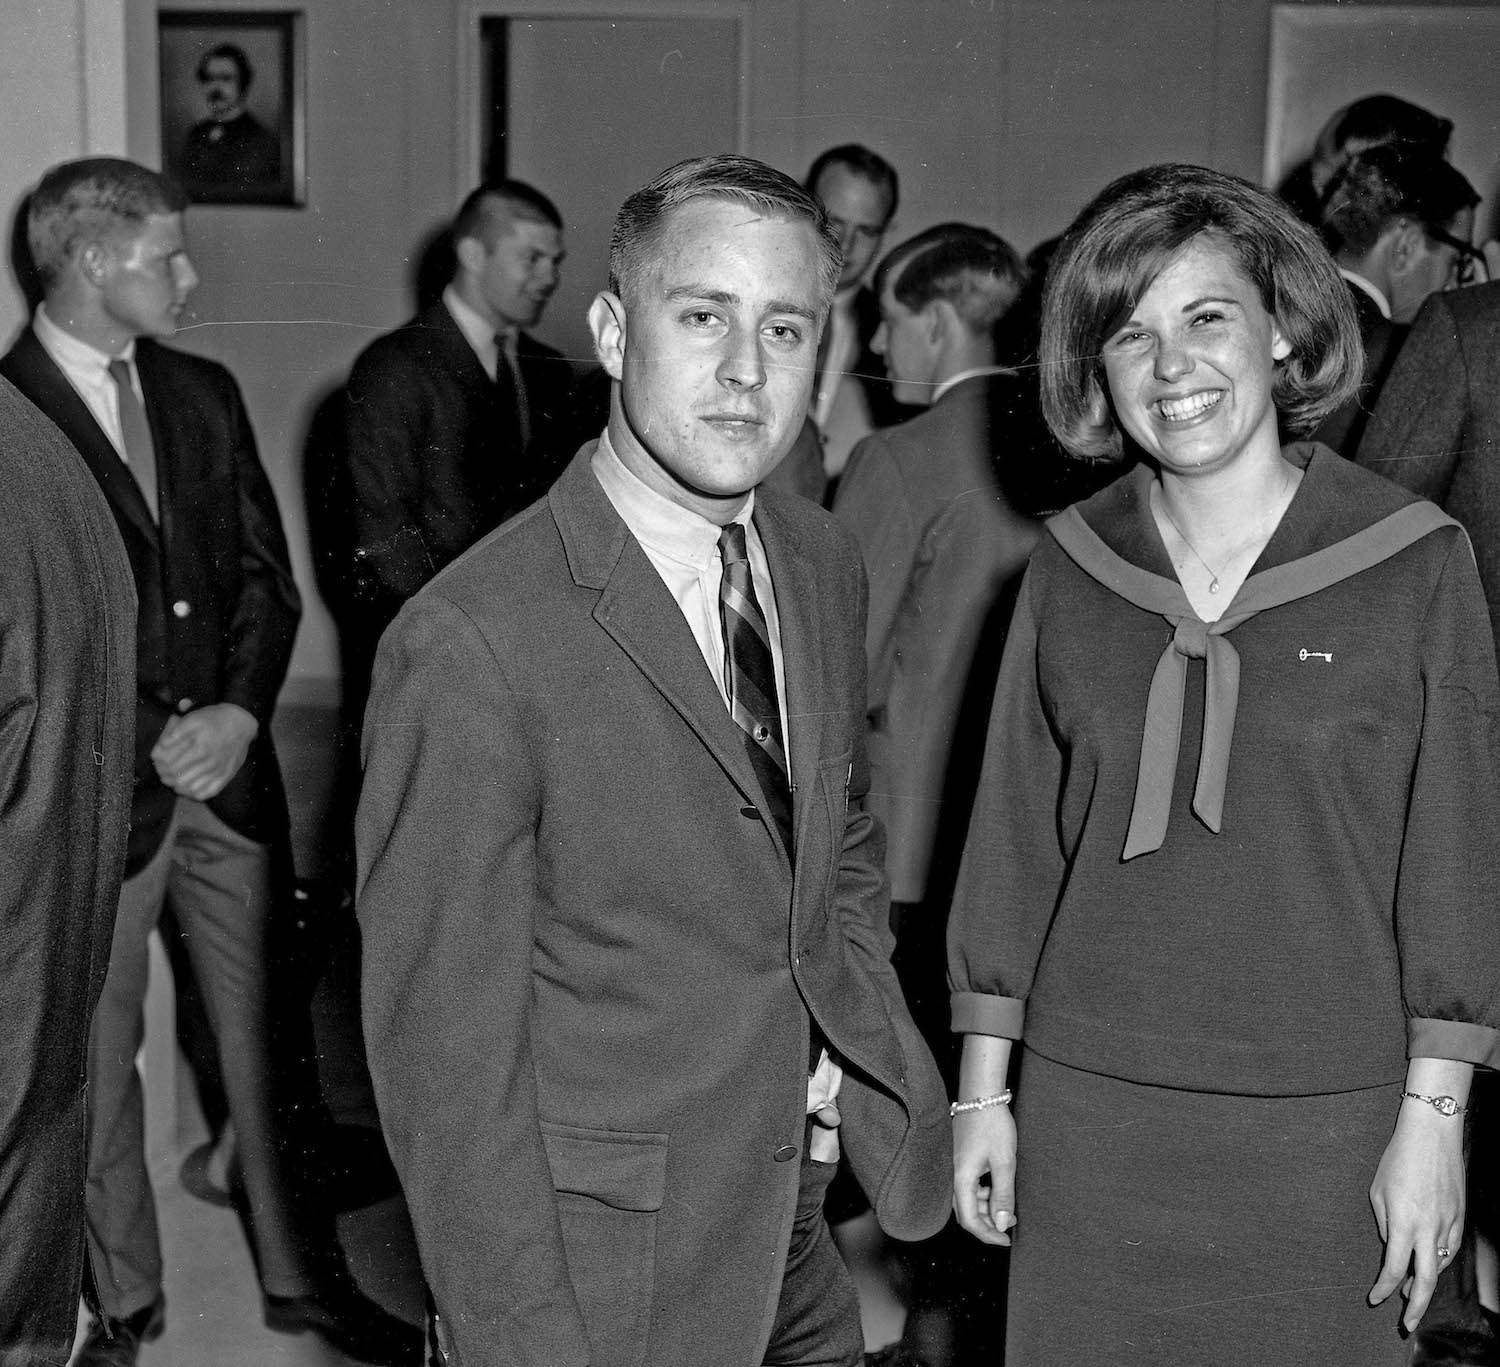 Spring 1965, Student Social, Jim and Judy, Fresno State College